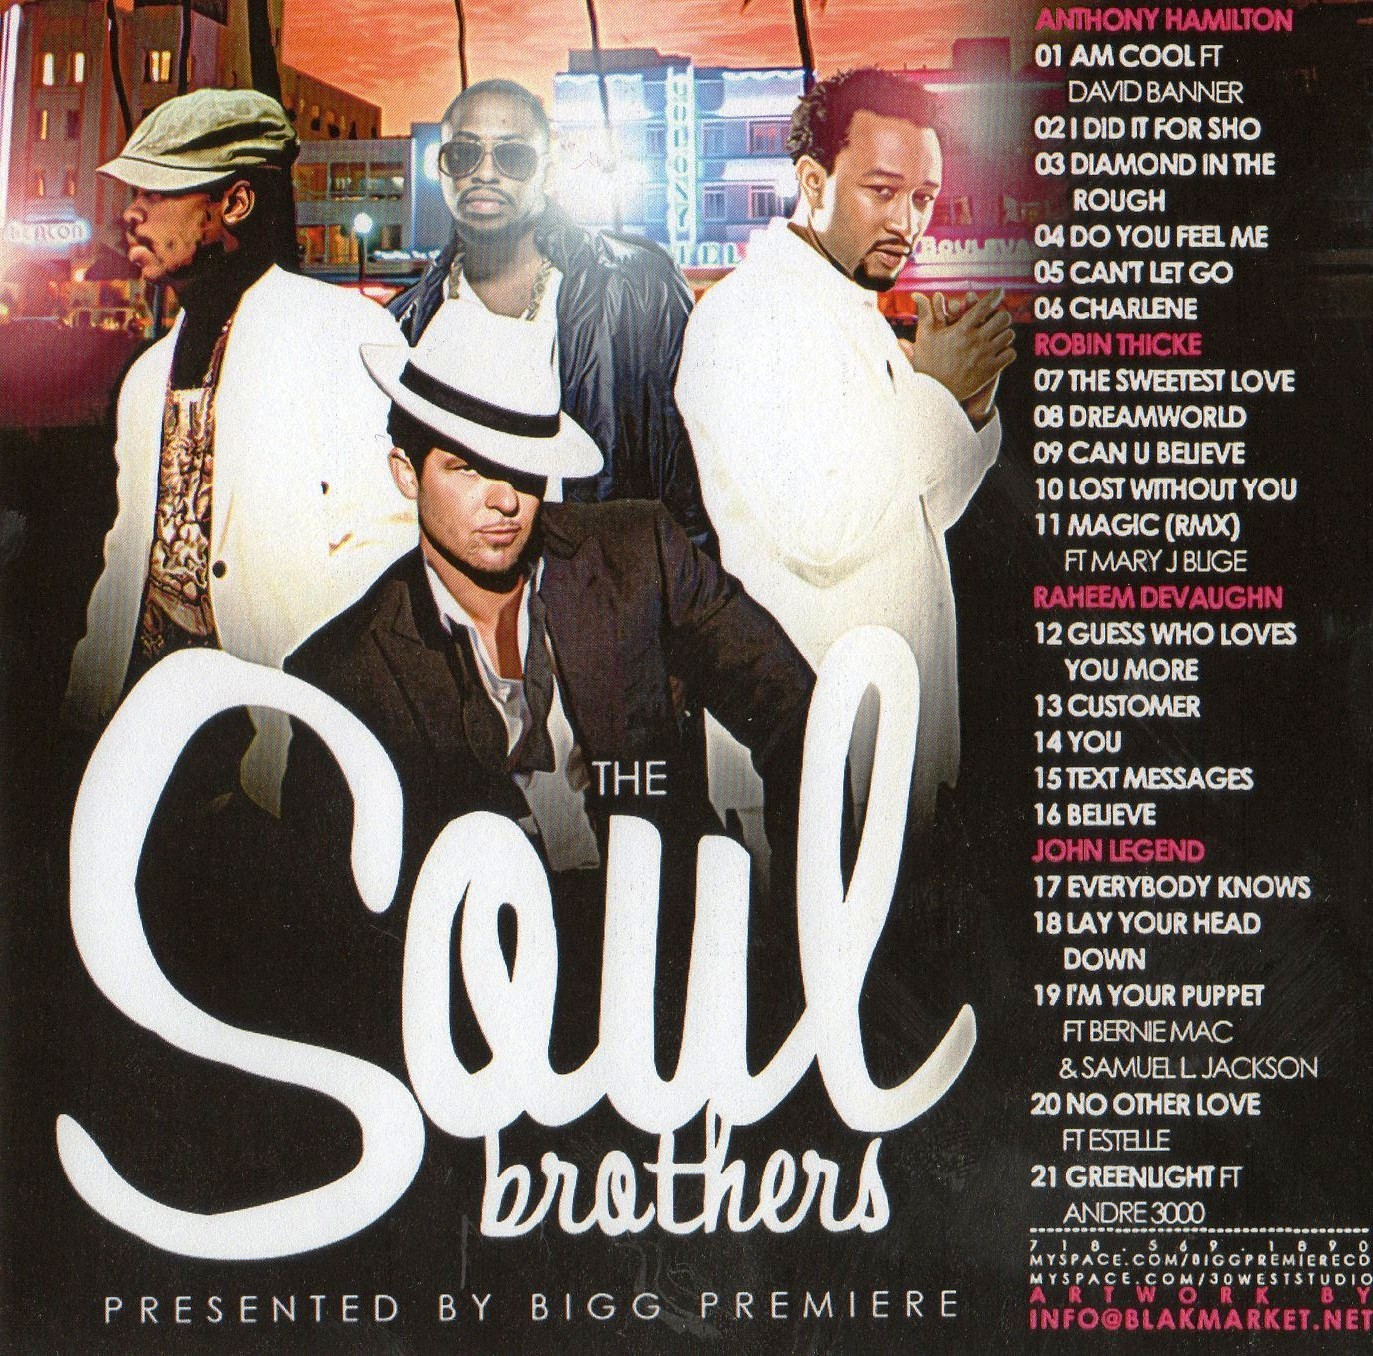 [00_VA-Bigg_Premiere_Presents_the_Soul_Brothers-2009.jpg]